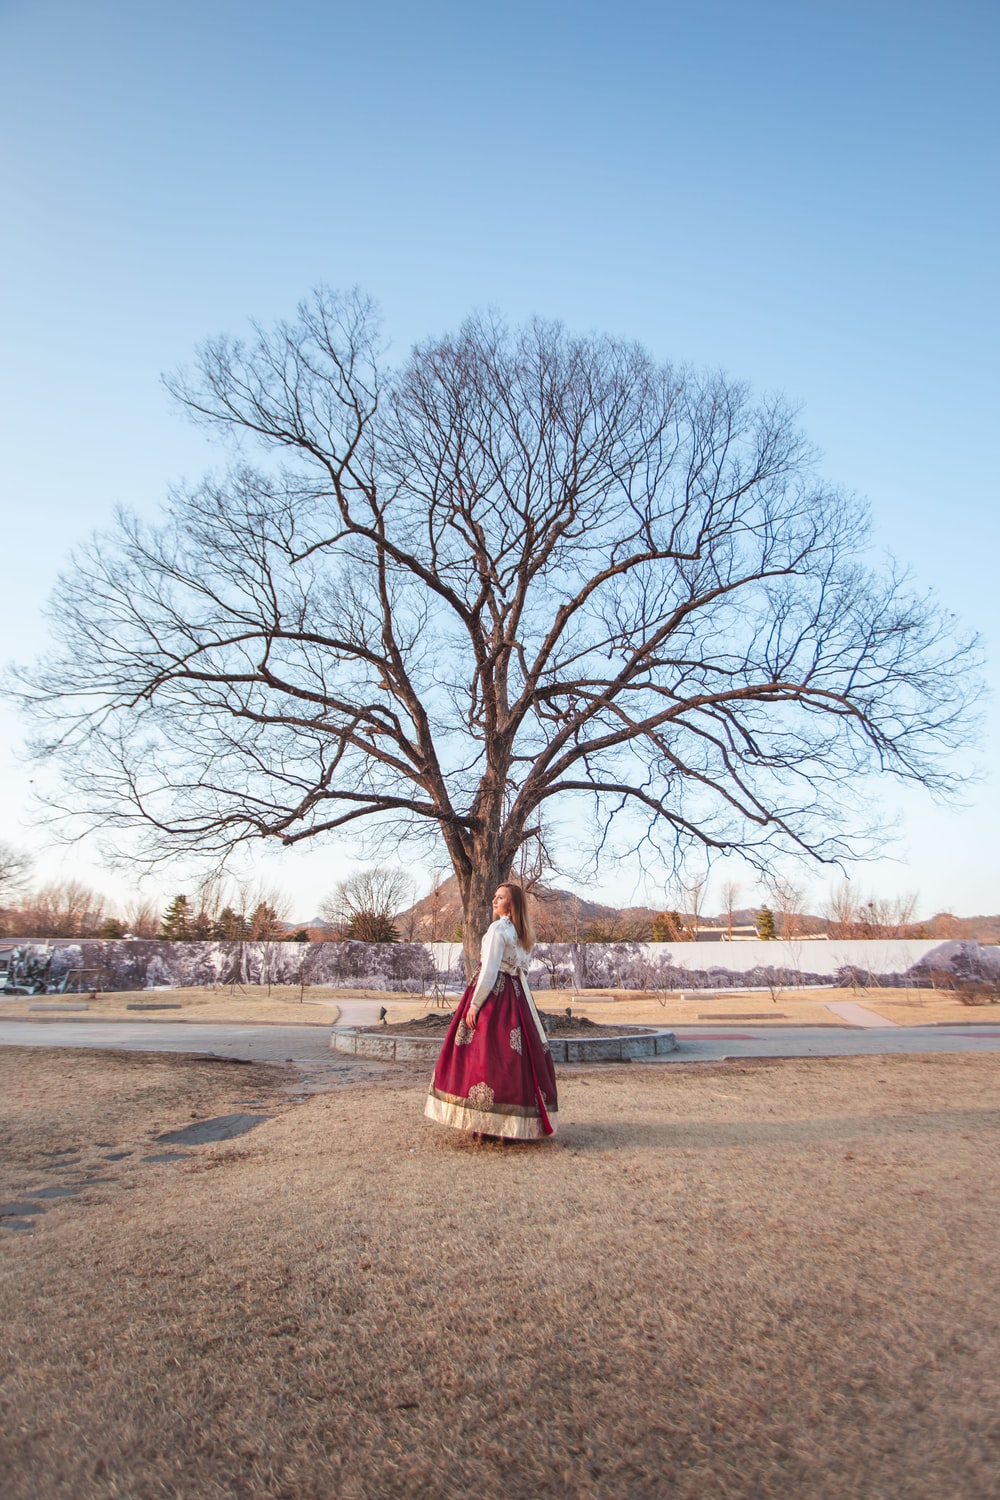 woman in red dress standing on brown dirt road near bare trees during daytime